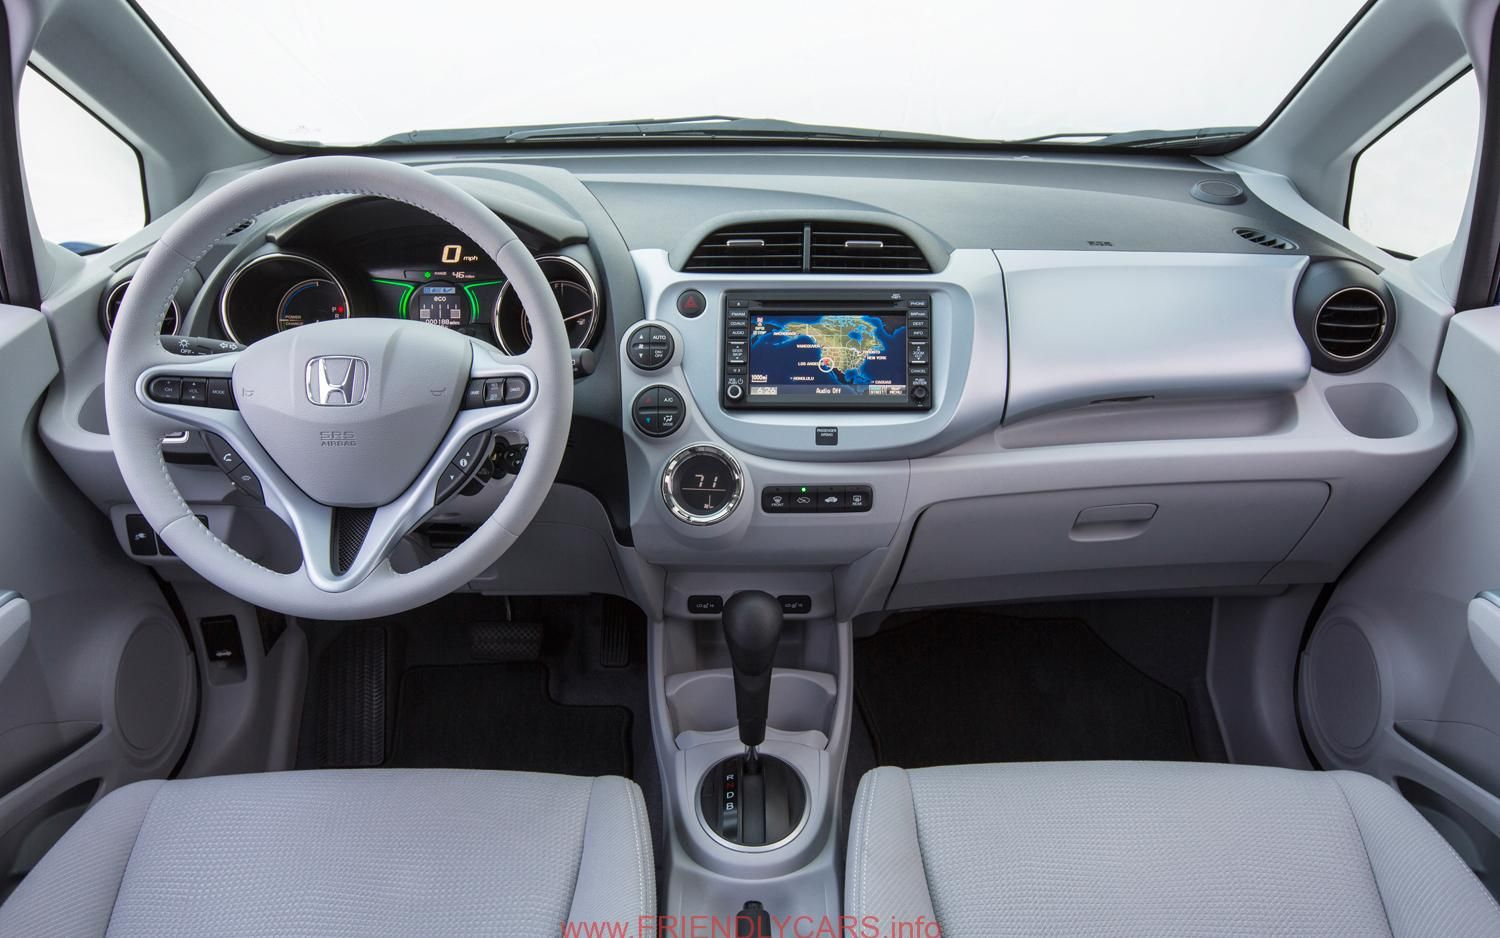 2013 Honda Fit Interior Car Images Hd Alifiah Sites Honda Fit Interior Honda Fit 2013 Honda Fit